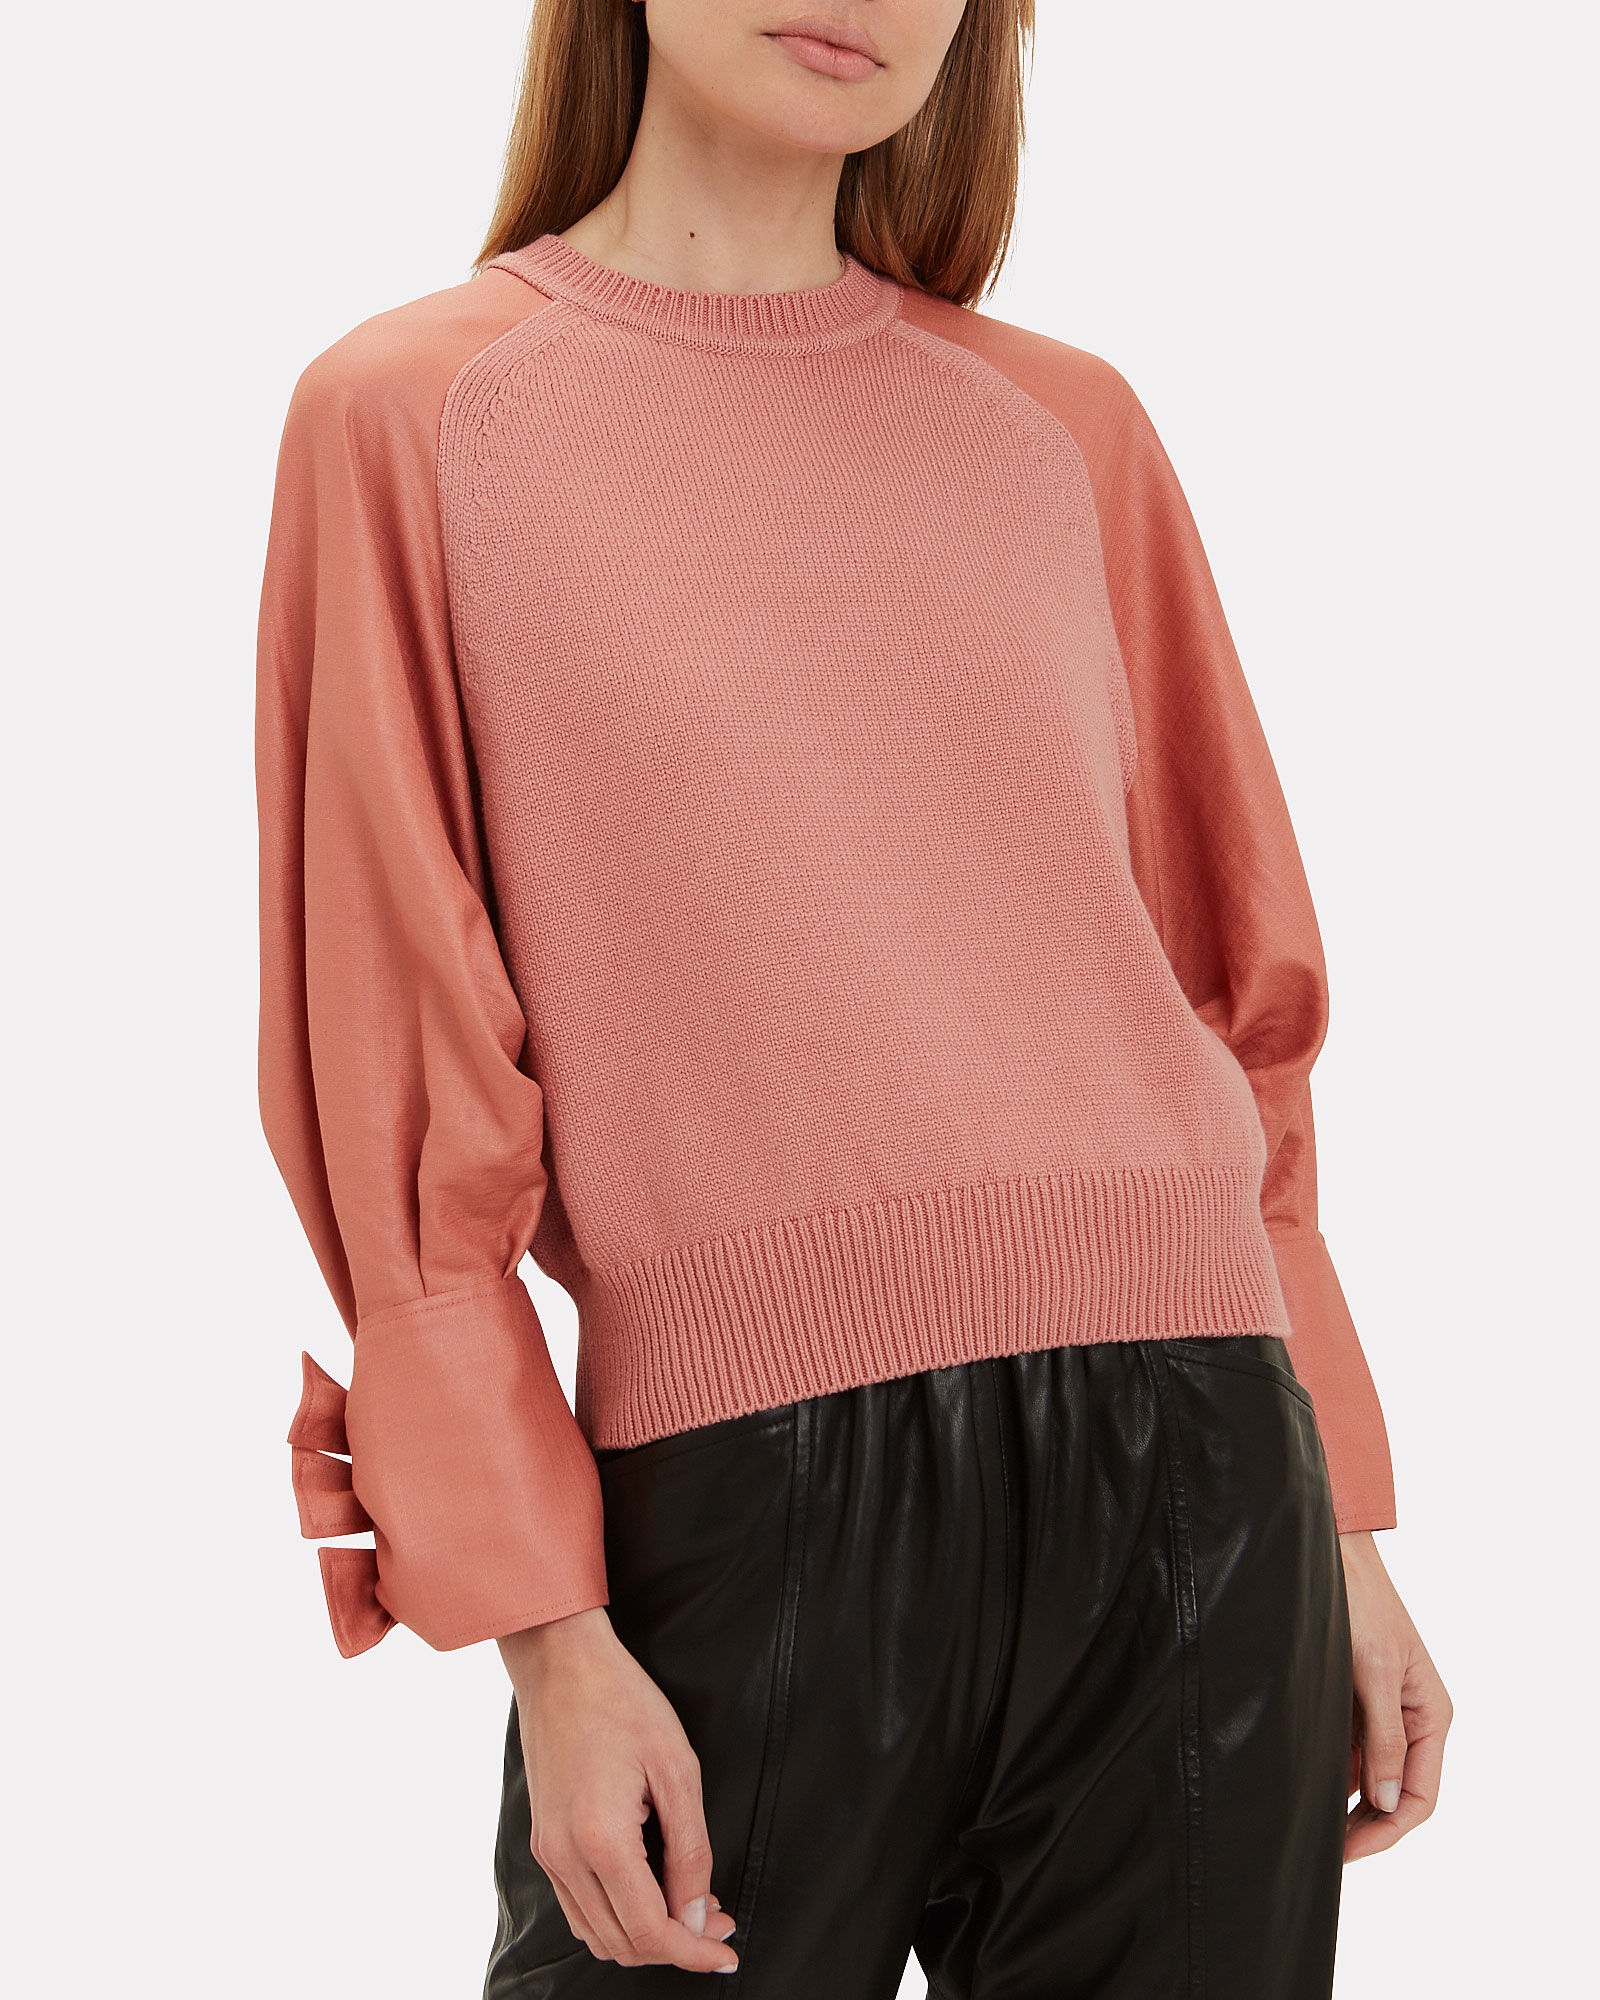 Satin Sleeve Sweater, PINK, hi-res